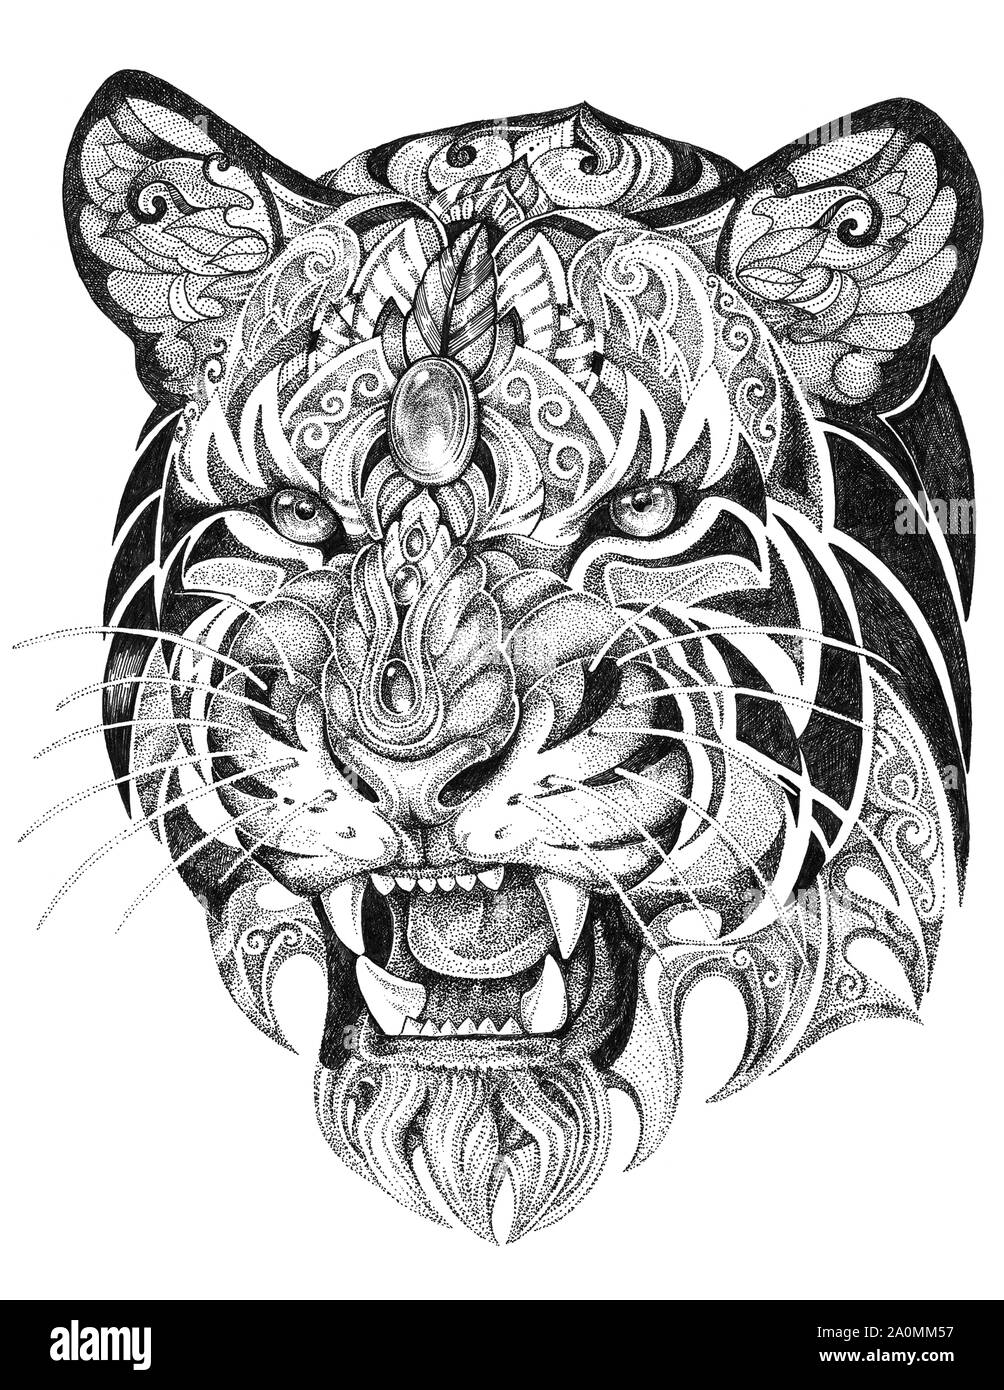 Tiger Tattoo Art High Resolution Stock Photography And Images Alamy